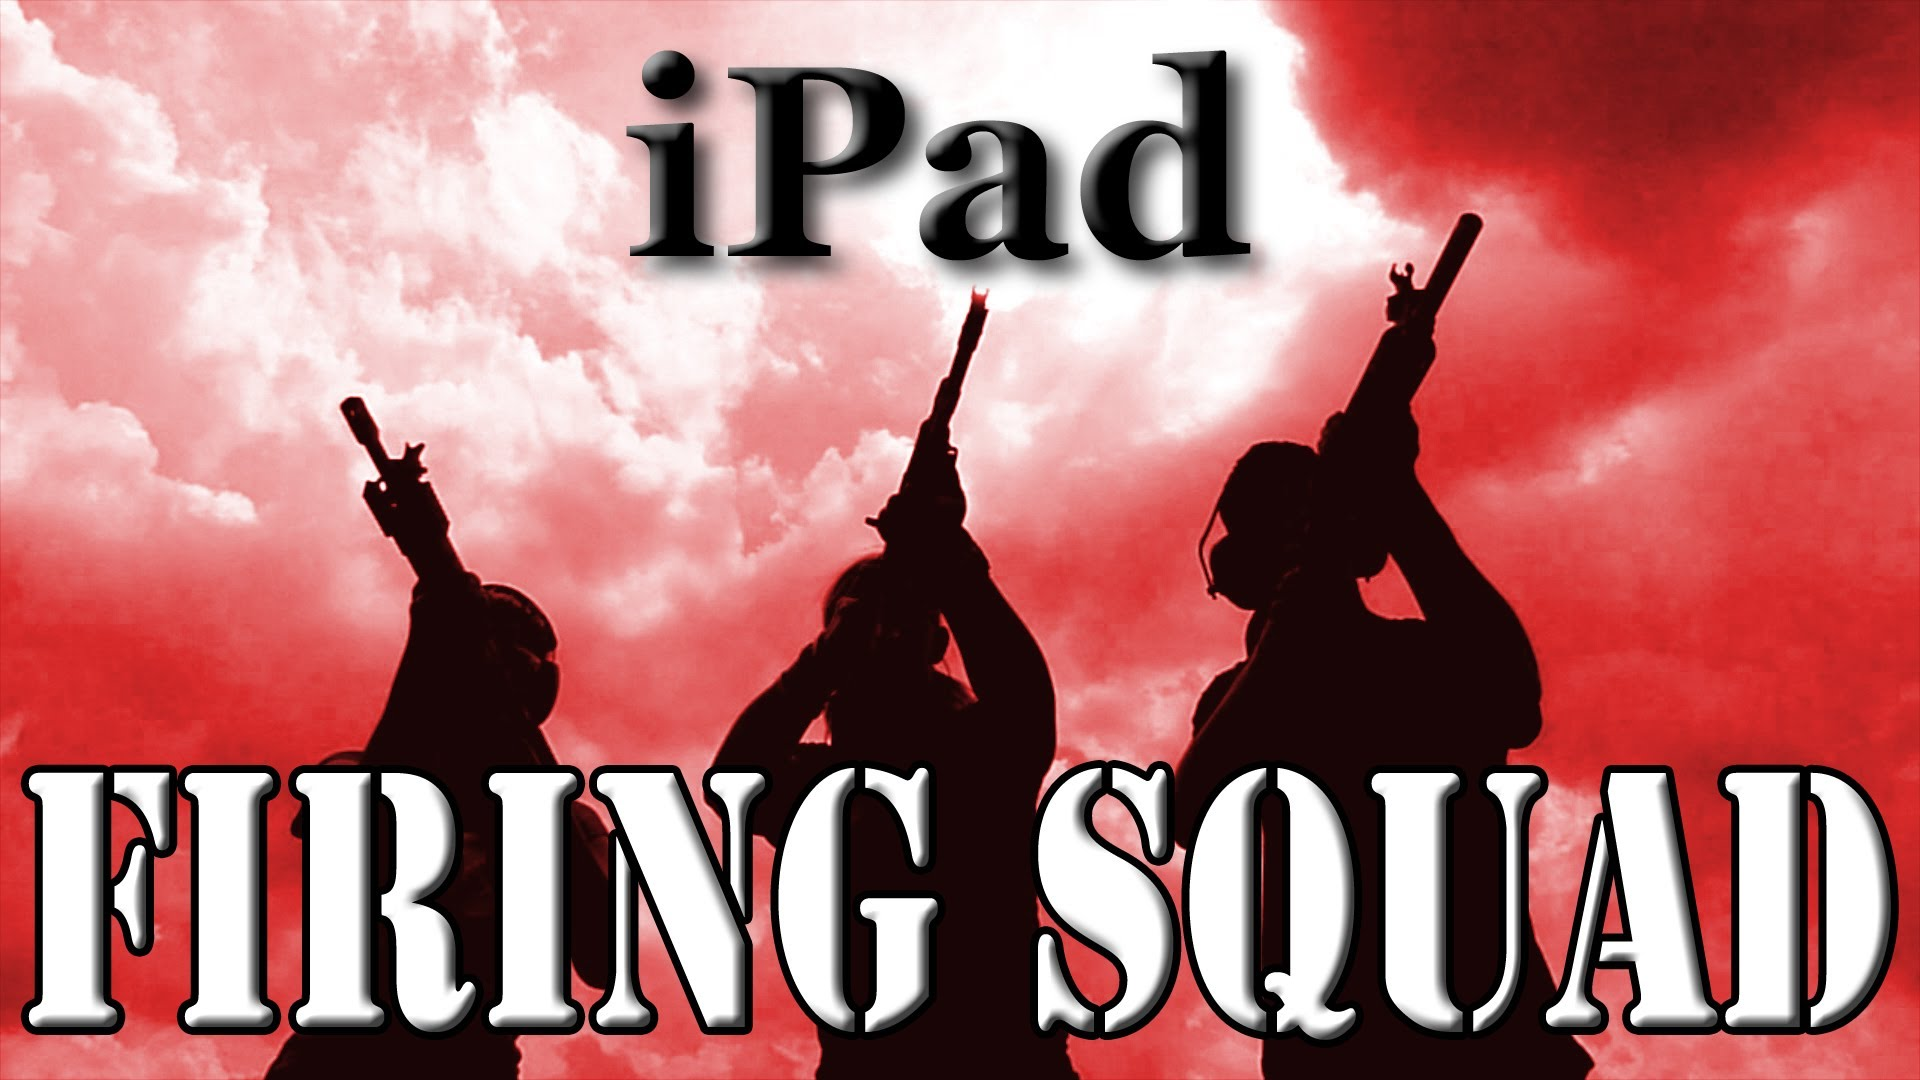 Firing Squad vs iPad